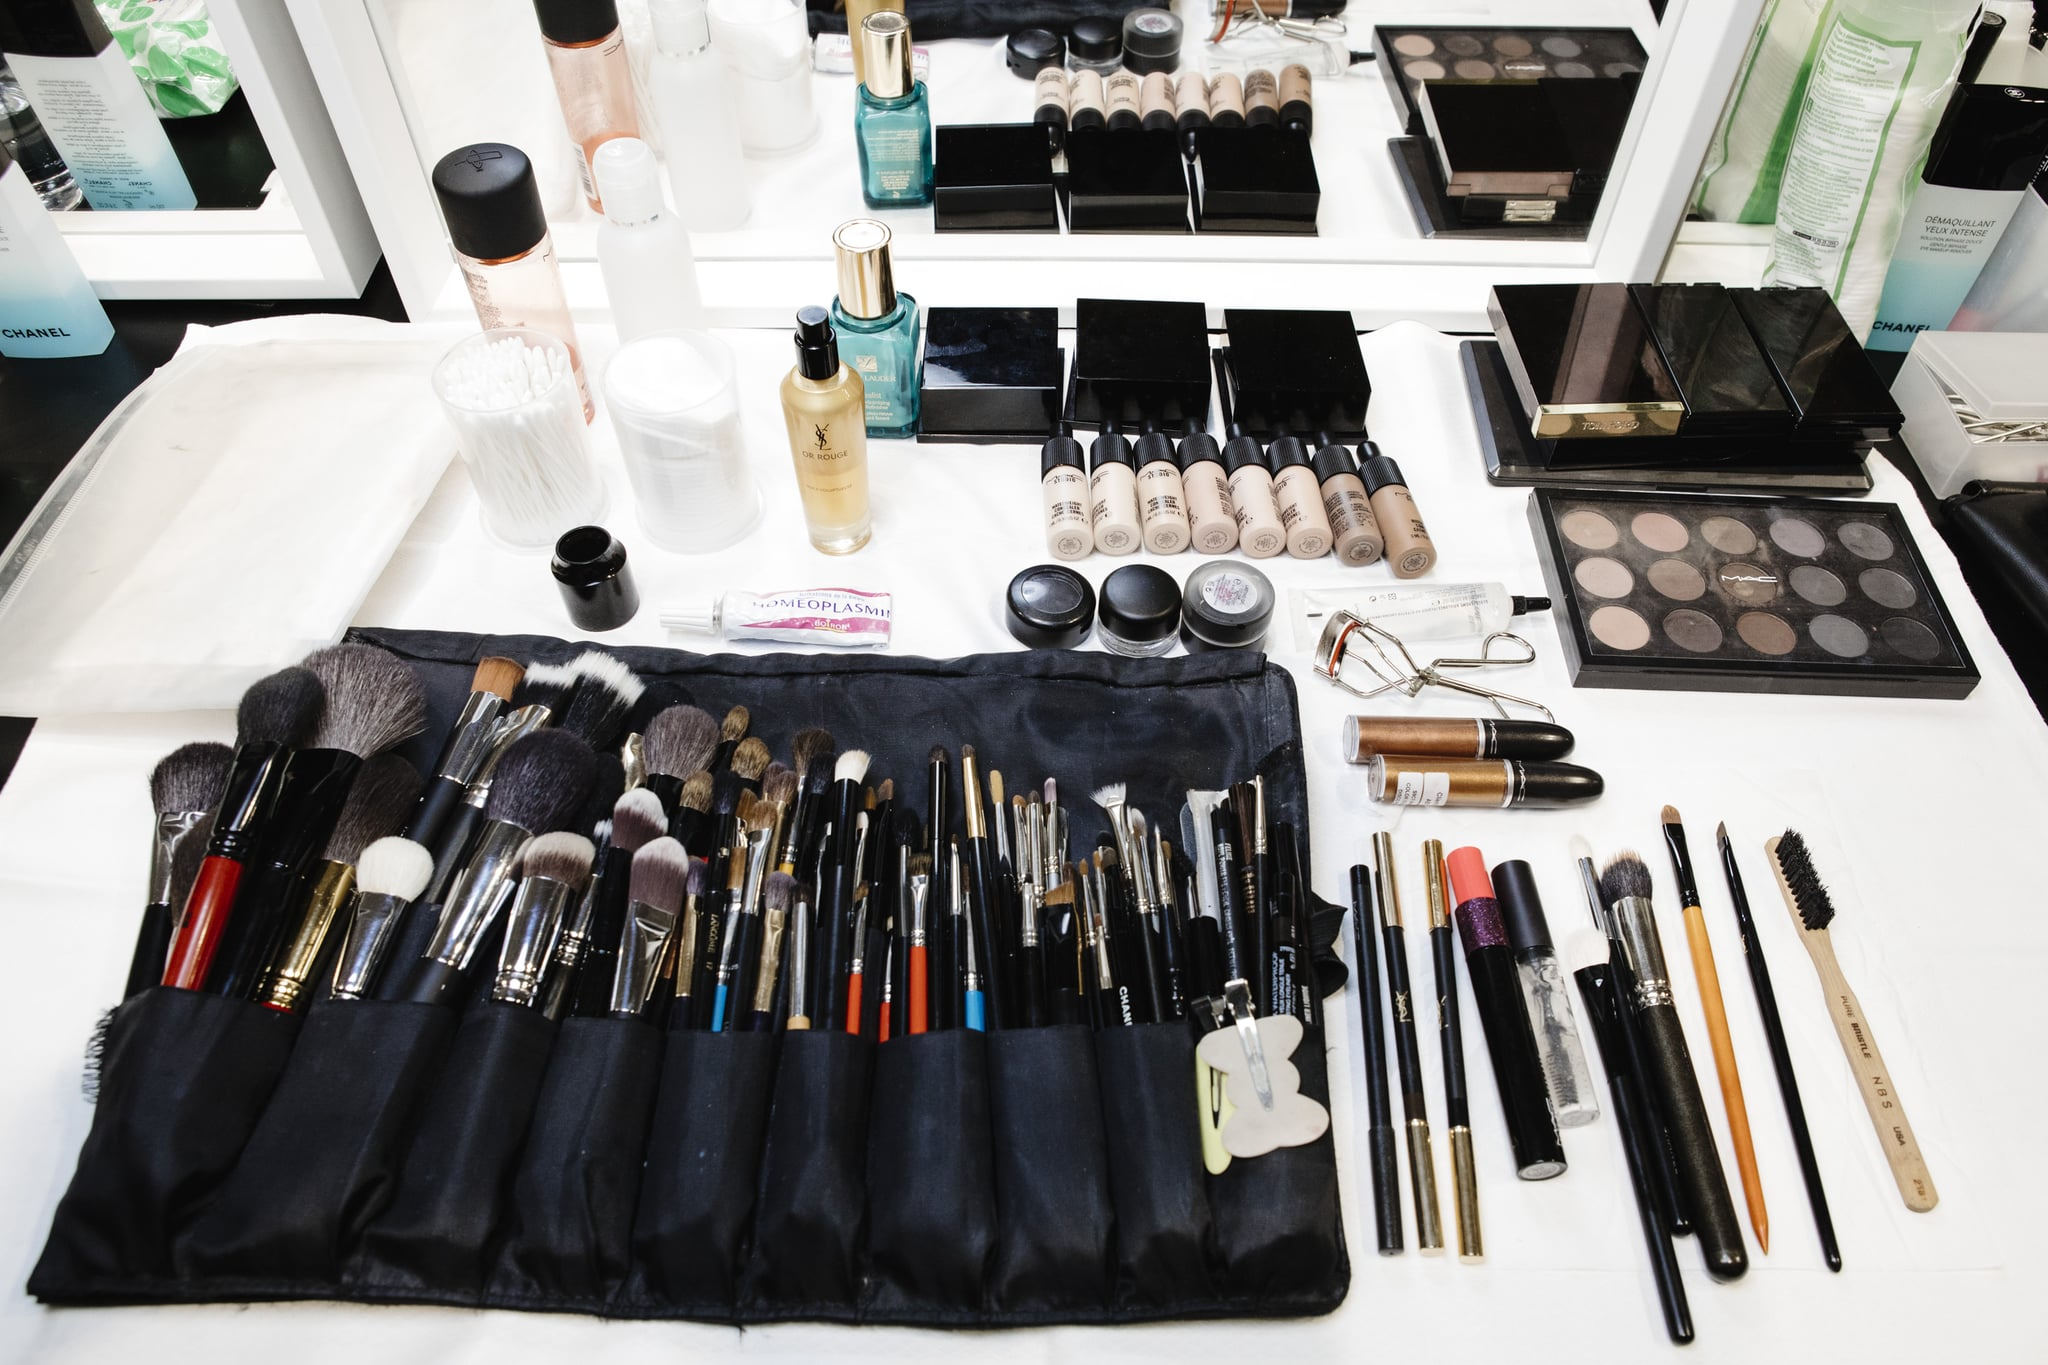 MILAN, ITALY - FEBRUARY 24: Mac products are displayed ahead backstage ahead of the Philosophy Di Lorenzo Serafini show during Milan Fashion Week Fall/Winter 2018/19 on February 24, 2018 in Milan, Italy.  (Photo by Rosdiana Ciaravolo/Getty Images)